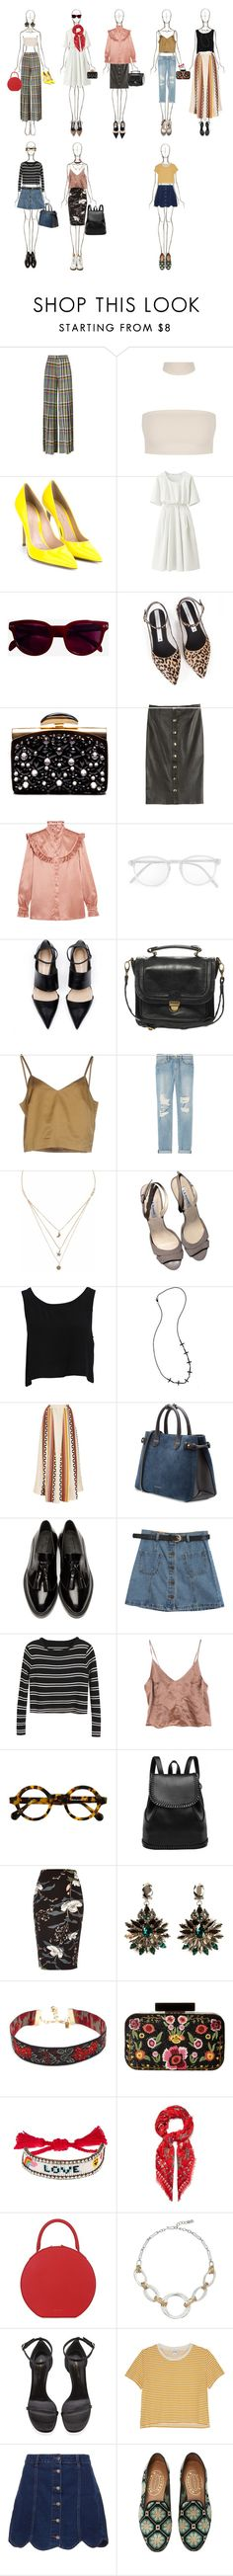 """""""Untitled #187"""" by lrdisawesome ❤ liked on Polyvore featuring Marco de Vincenzo, Gianvito Rossi, Uniqlo, Derek Lam, Zolà, Nina Ricci, FAUSTO PUGLISI, Yves Saint Laurent, RetroSuperFuture and Pieces"""